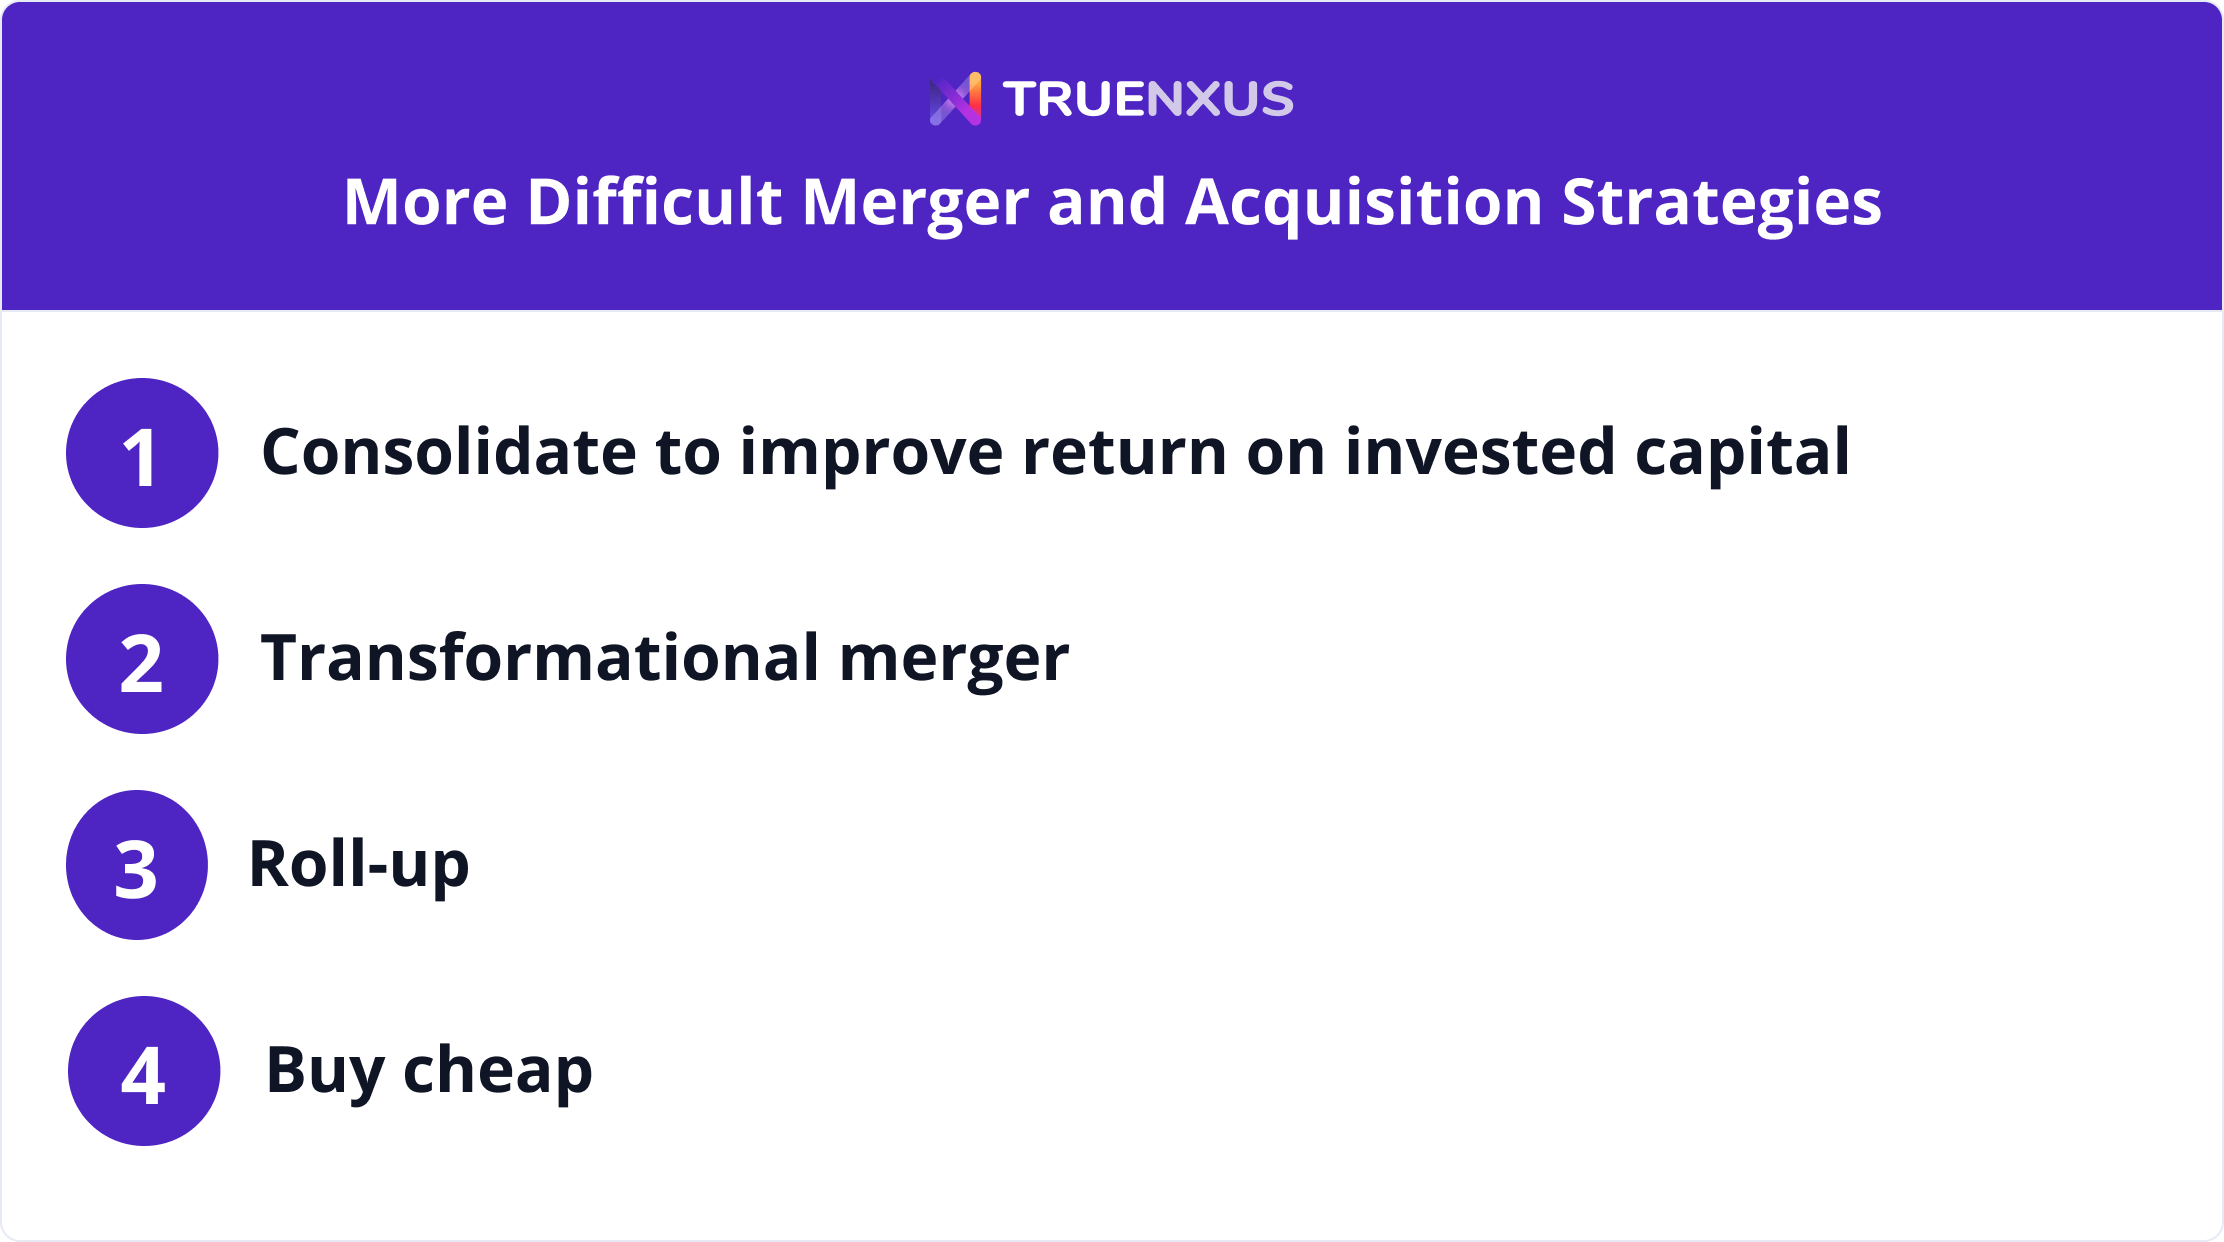 More difficult merger and acquisition strategies infographic